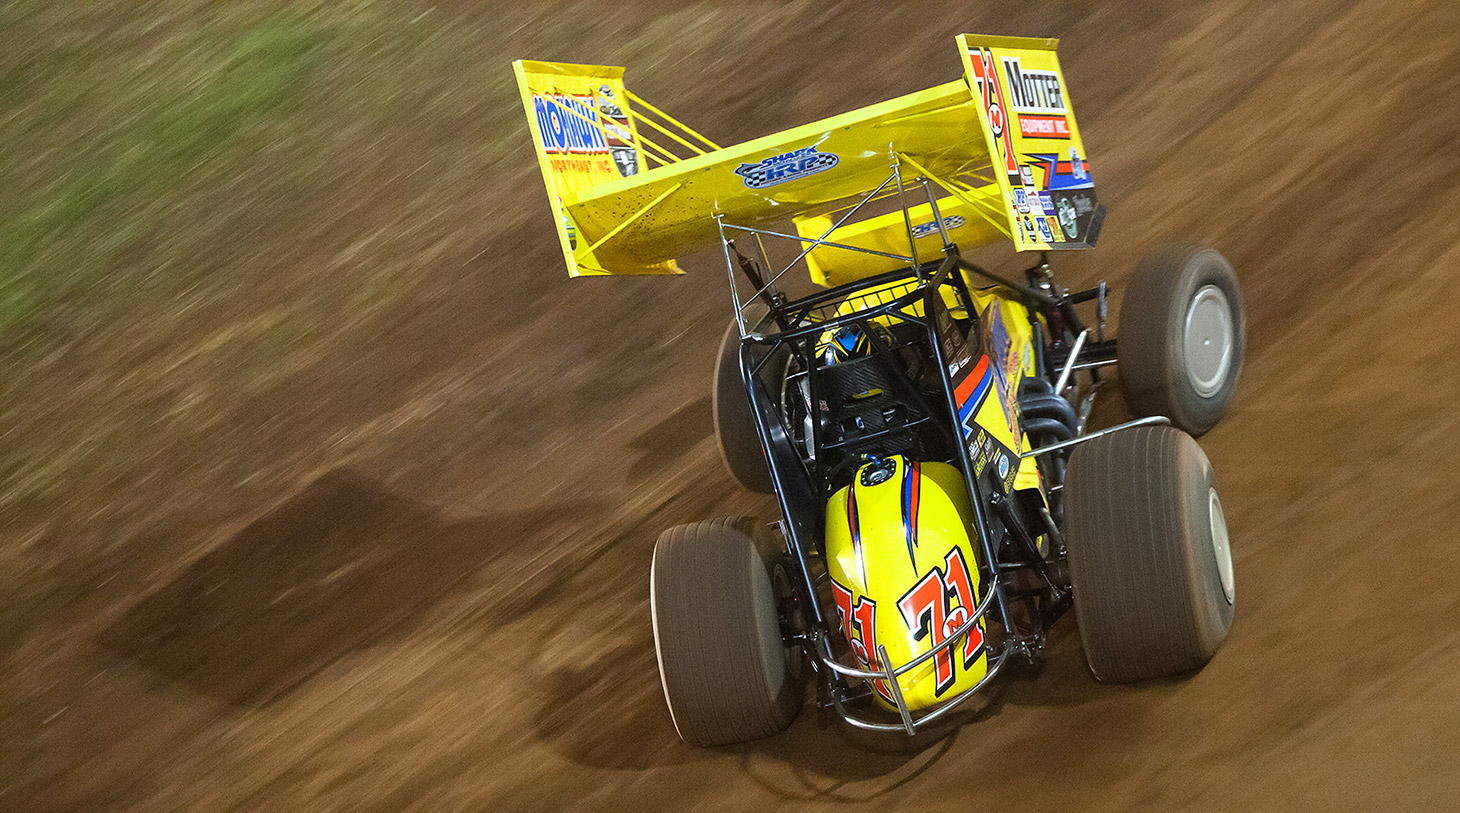 71m Dave Blaney on the gas into turn 1 at The Dirt Track at Charlotte